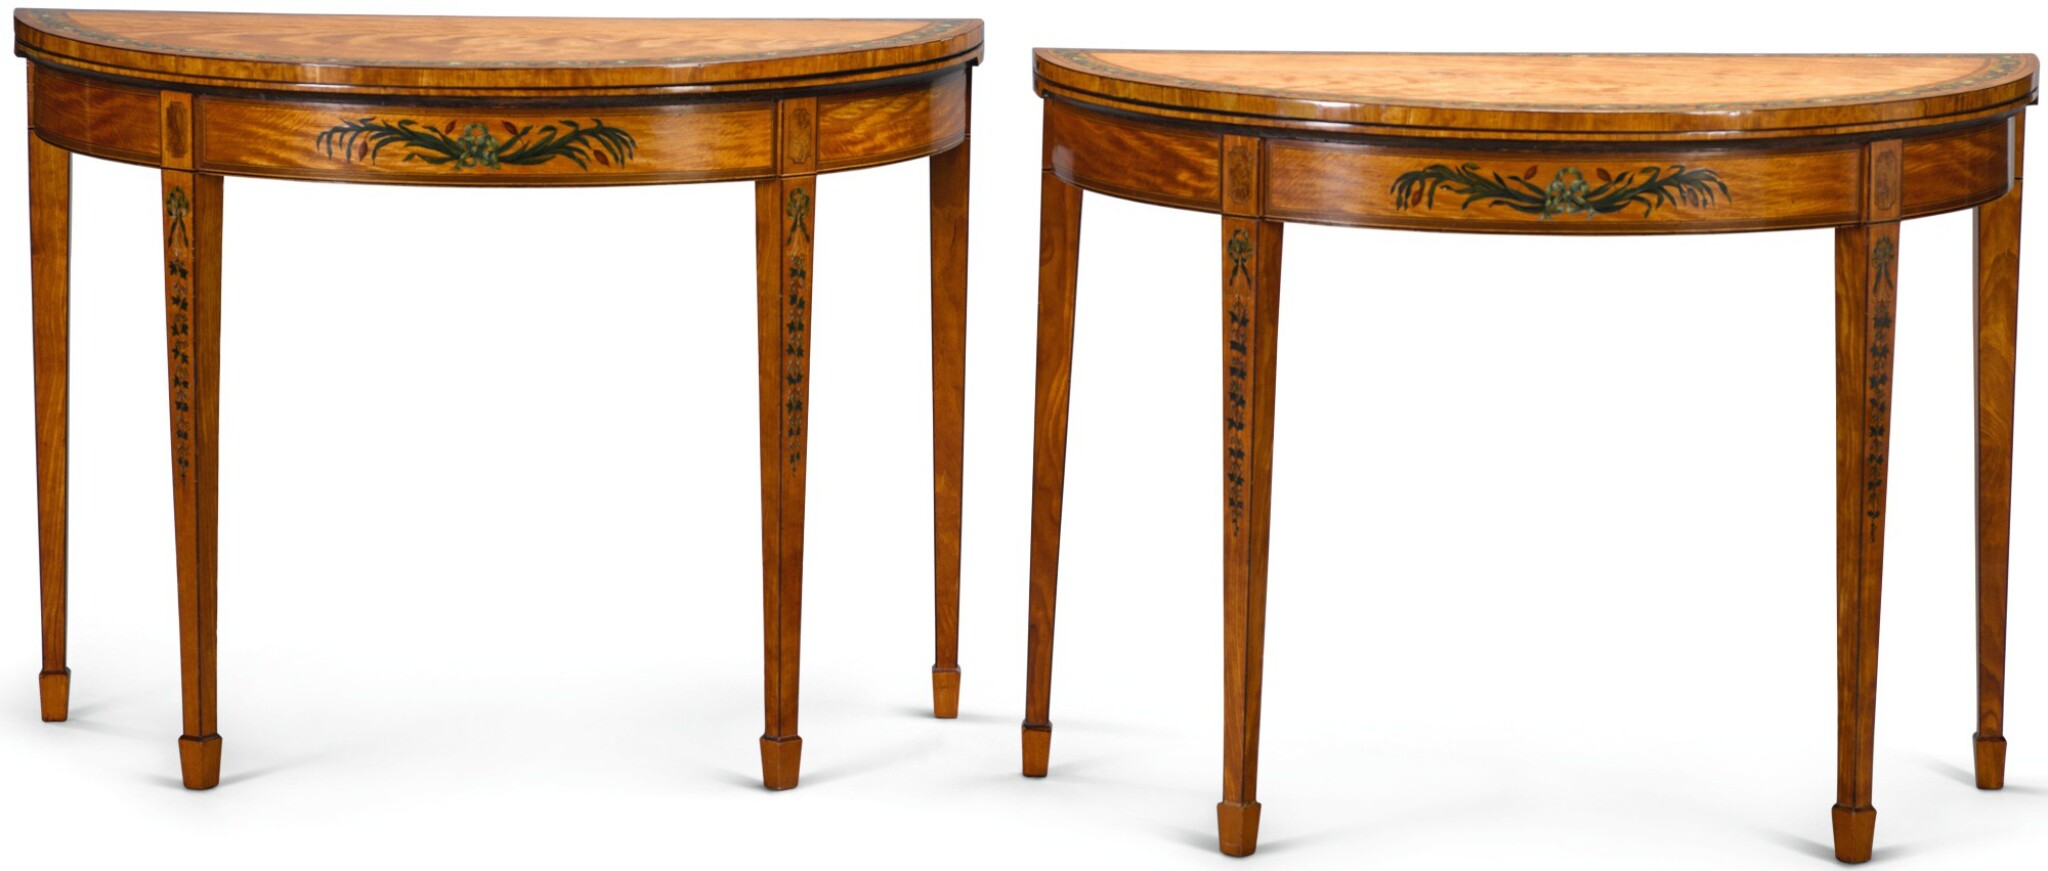 View full screen - View 1 of Lot 35. A PAIR OF GEORGE III PAINTED SATINWOOD DEMI-LUNE CARD TABLES, CIRCA 1790, ATTRIBUTED TO SEDDON, SONS & SHACKLETON.